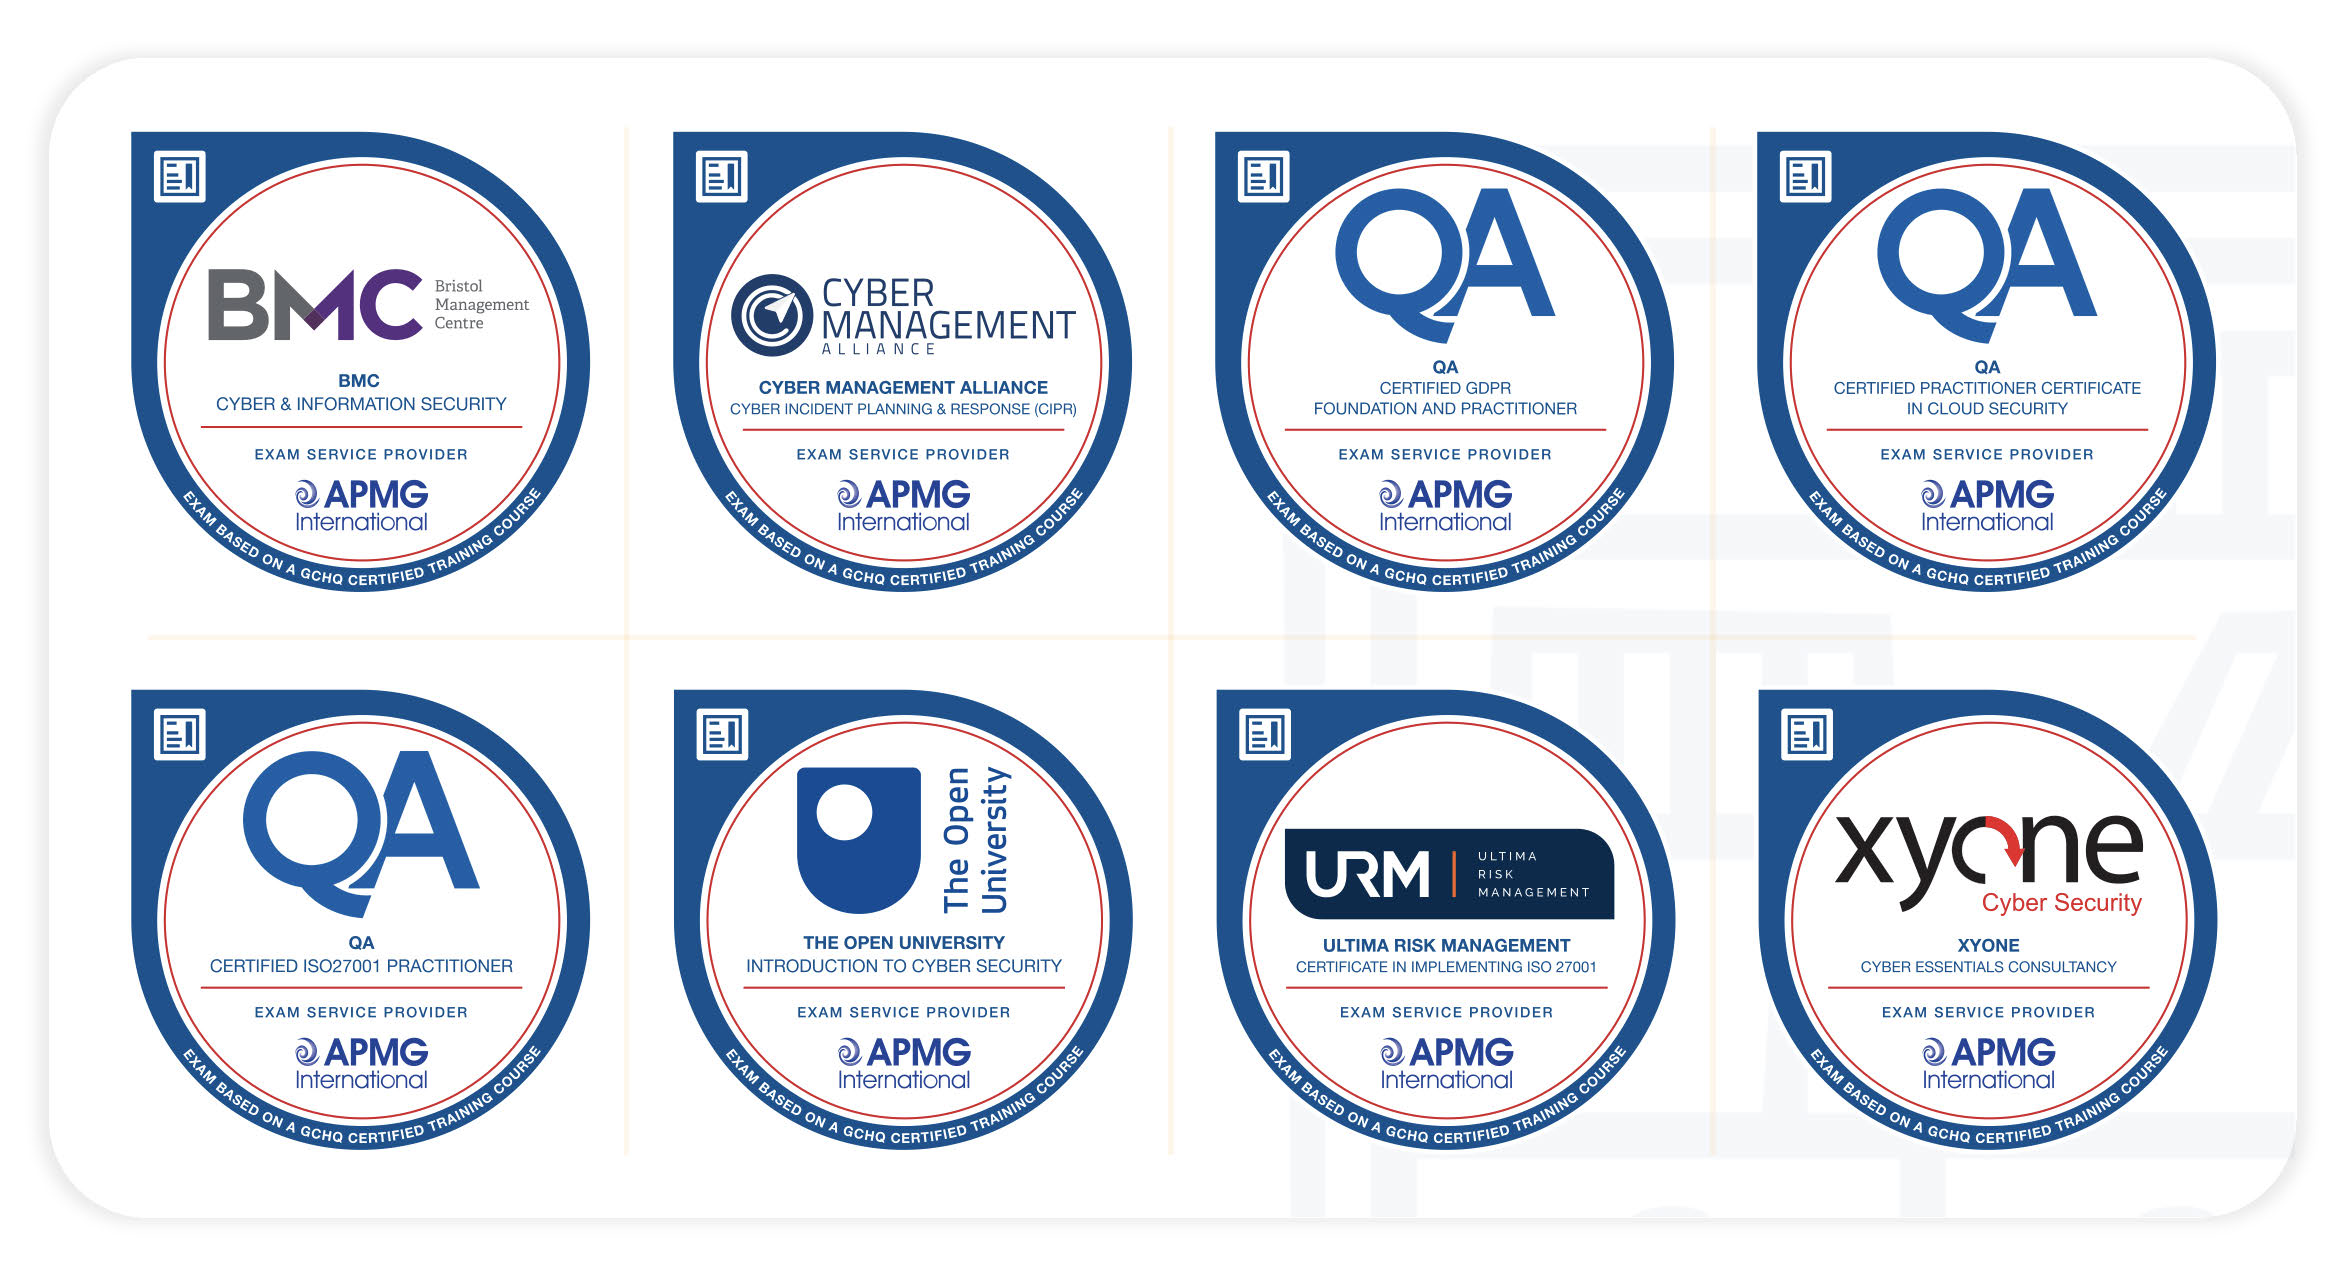 Digital Badges Launched For Apmg Exams Based On Gct